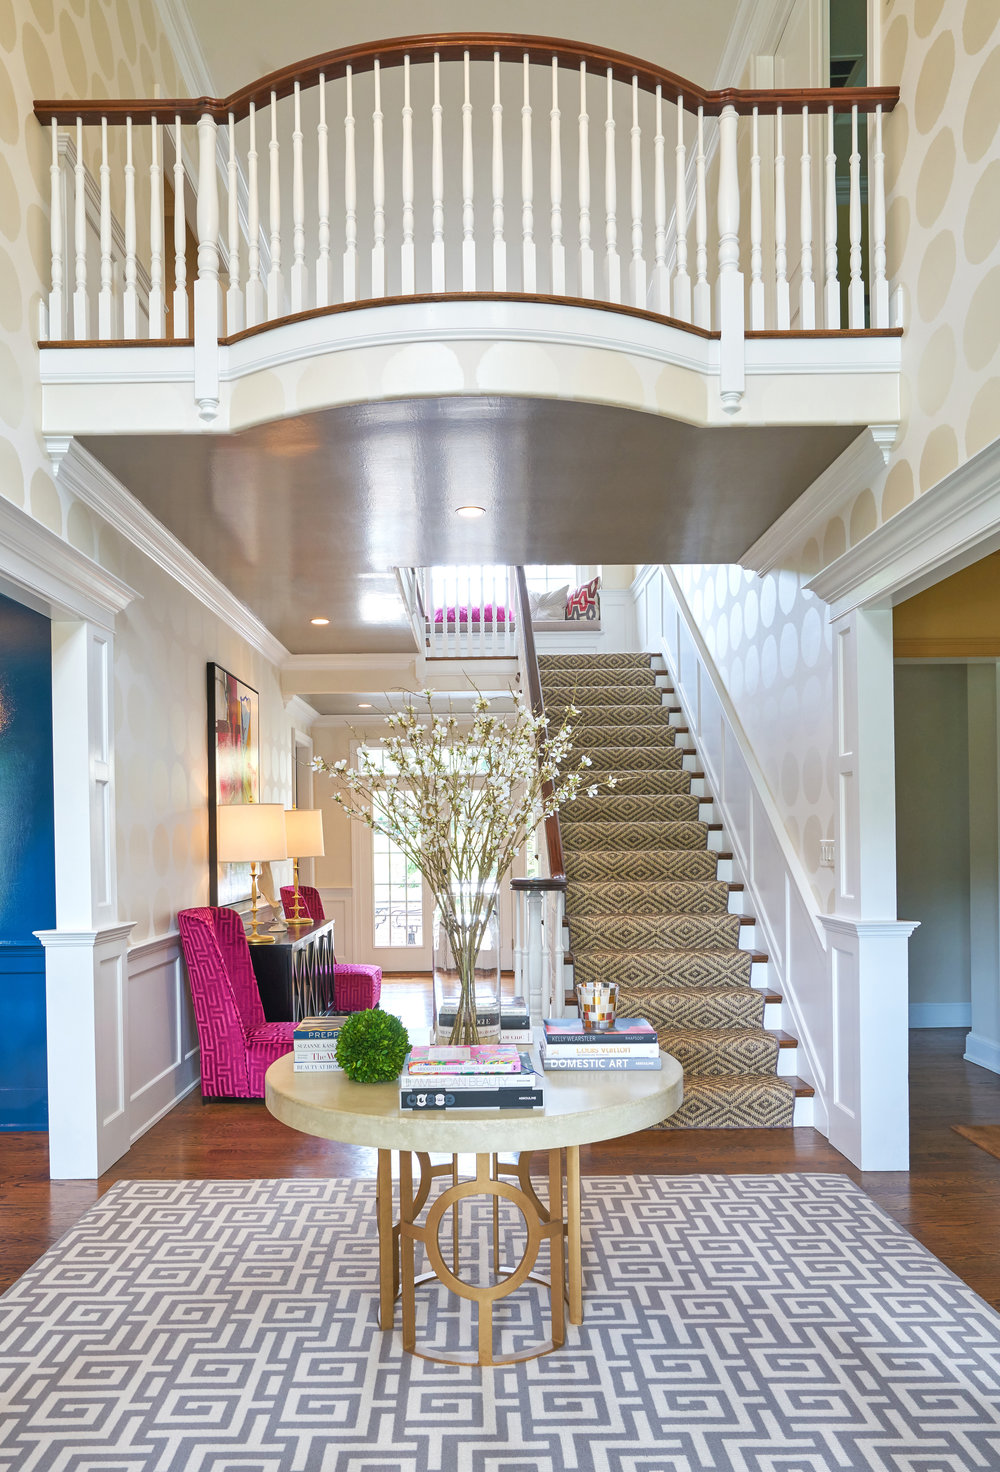 Beautiful furnishings bring glamour to entryway.